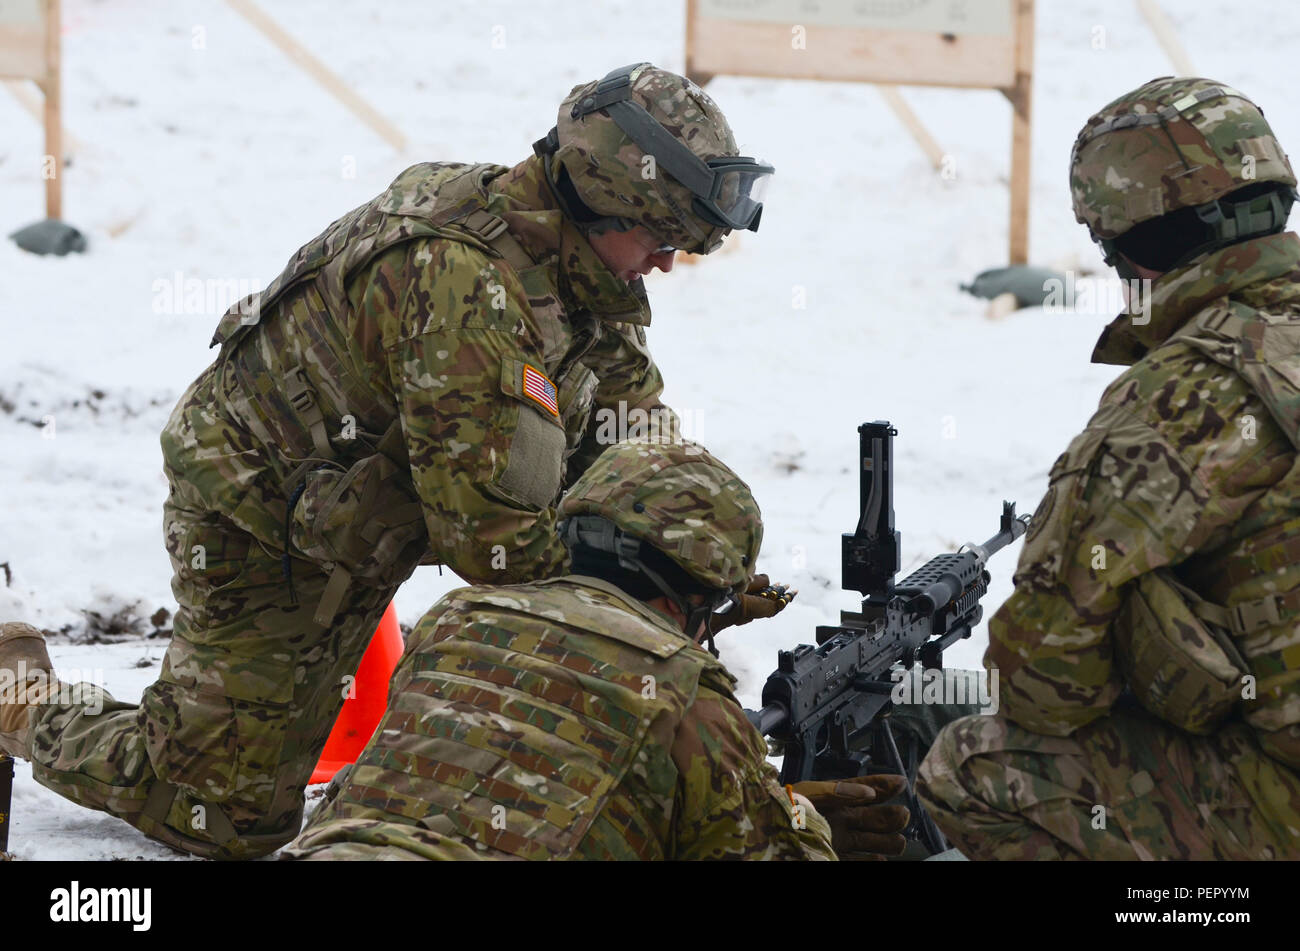 Pfc. Collin Sapp (left), an assistant gunner with 3rd Squadron, 2nd Cavalry Regiment, stationed at Vilseck, Germany, originally from Muldrow, Okla., prepares to feed an M240 machine gun during a training exercise at Adazi Training Area in Latvia, Jan. 25, 2016. (U.S. Army photo by Staff Sgt. Steven Colvin/Released) - Stock Image